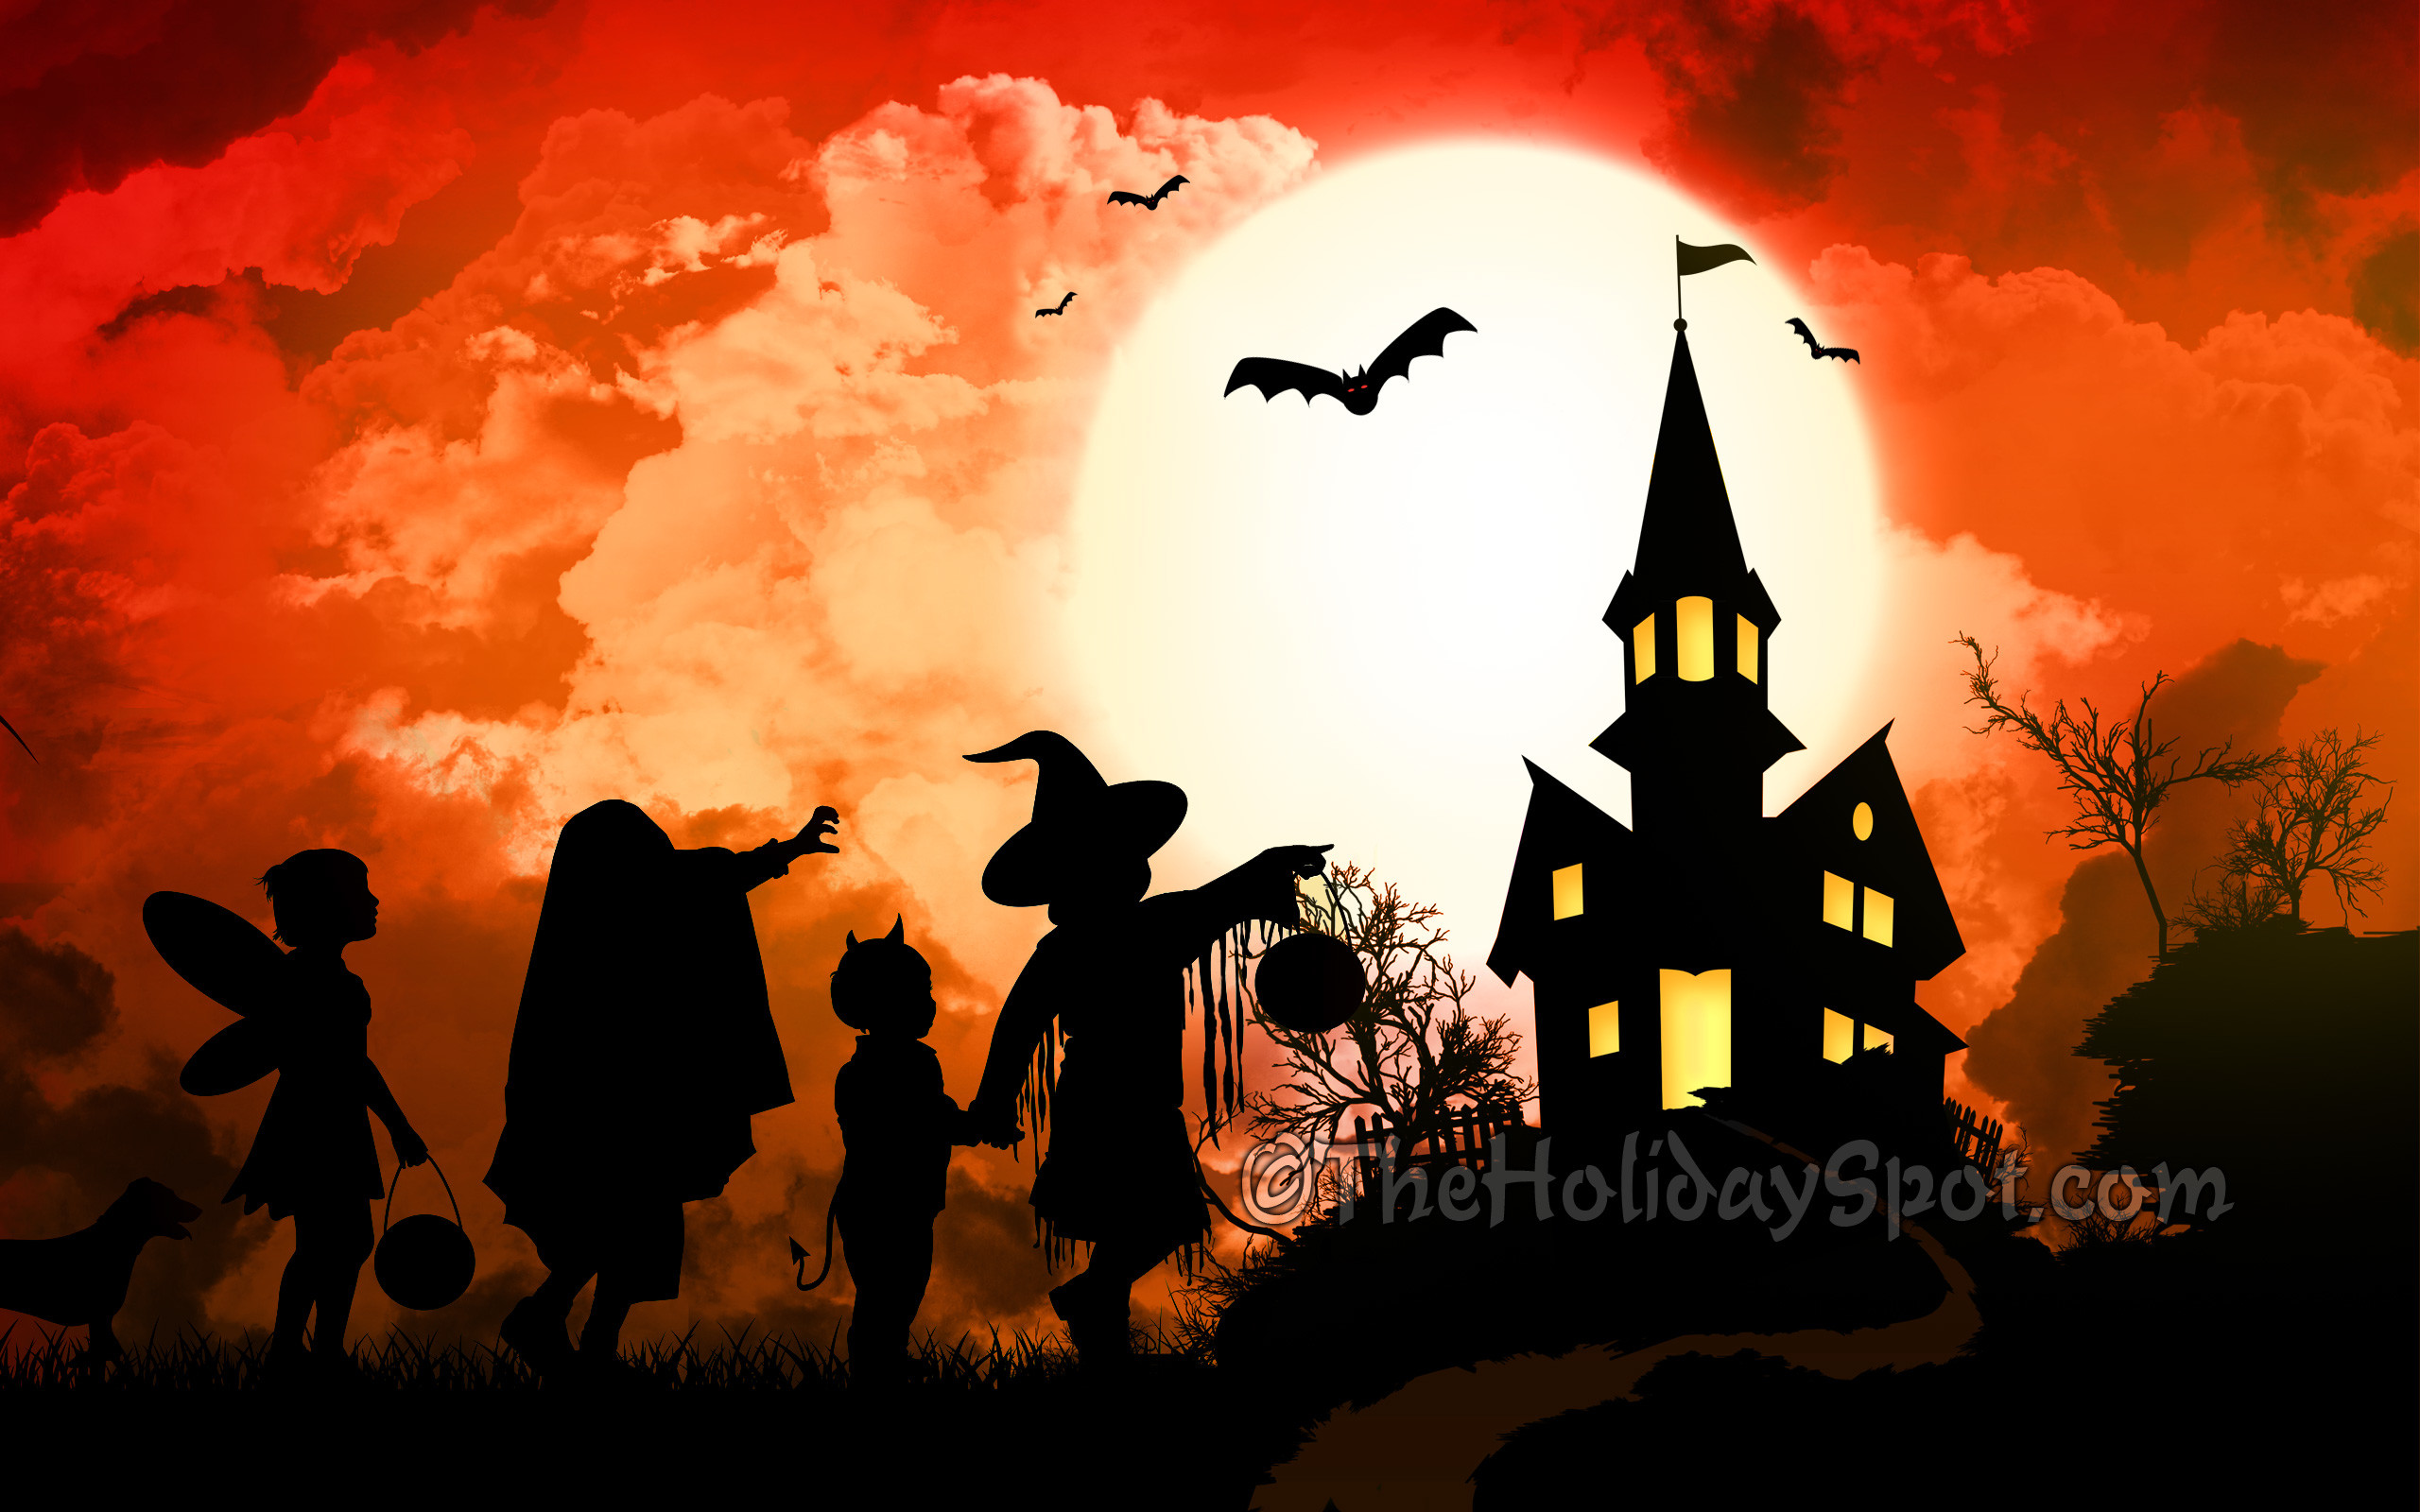 Halloween Wallpapers And Screensavers Wallpaper background.